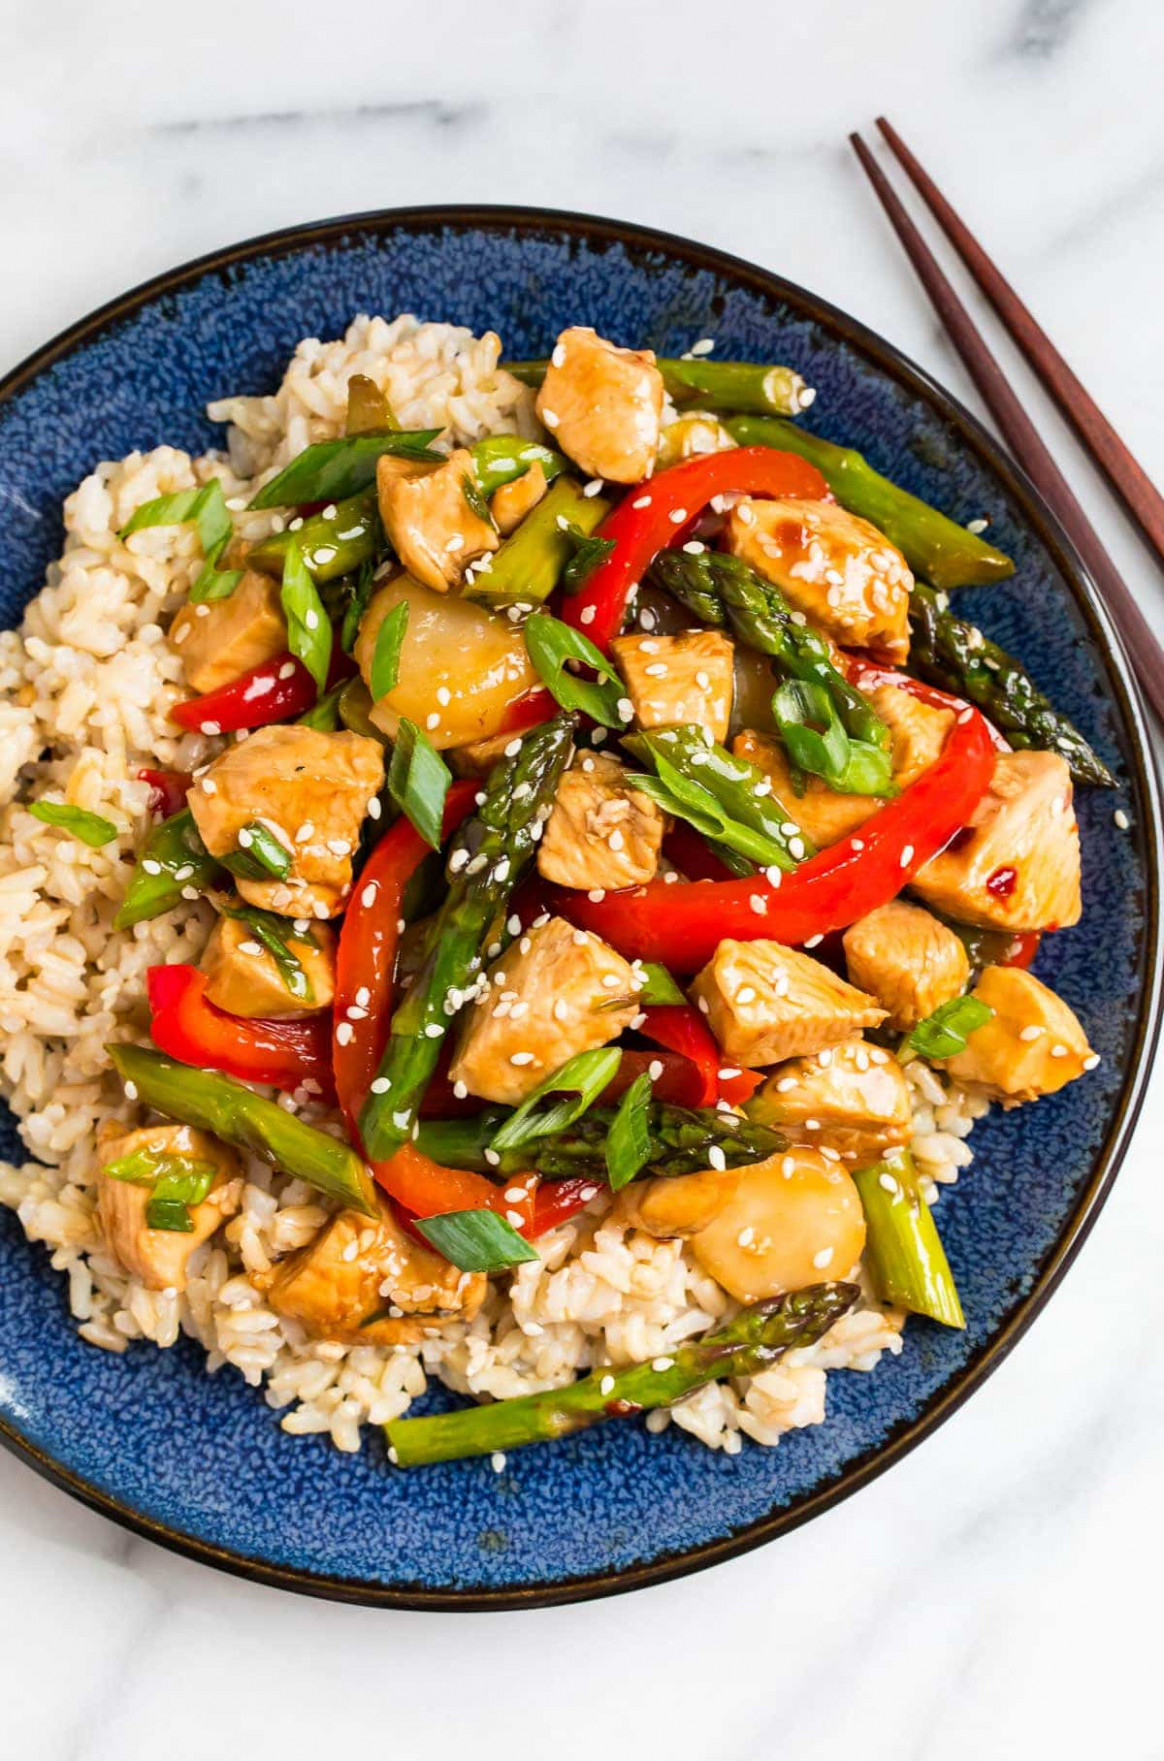 Teriyaki Chicken Stir Fry - recipes for chicken